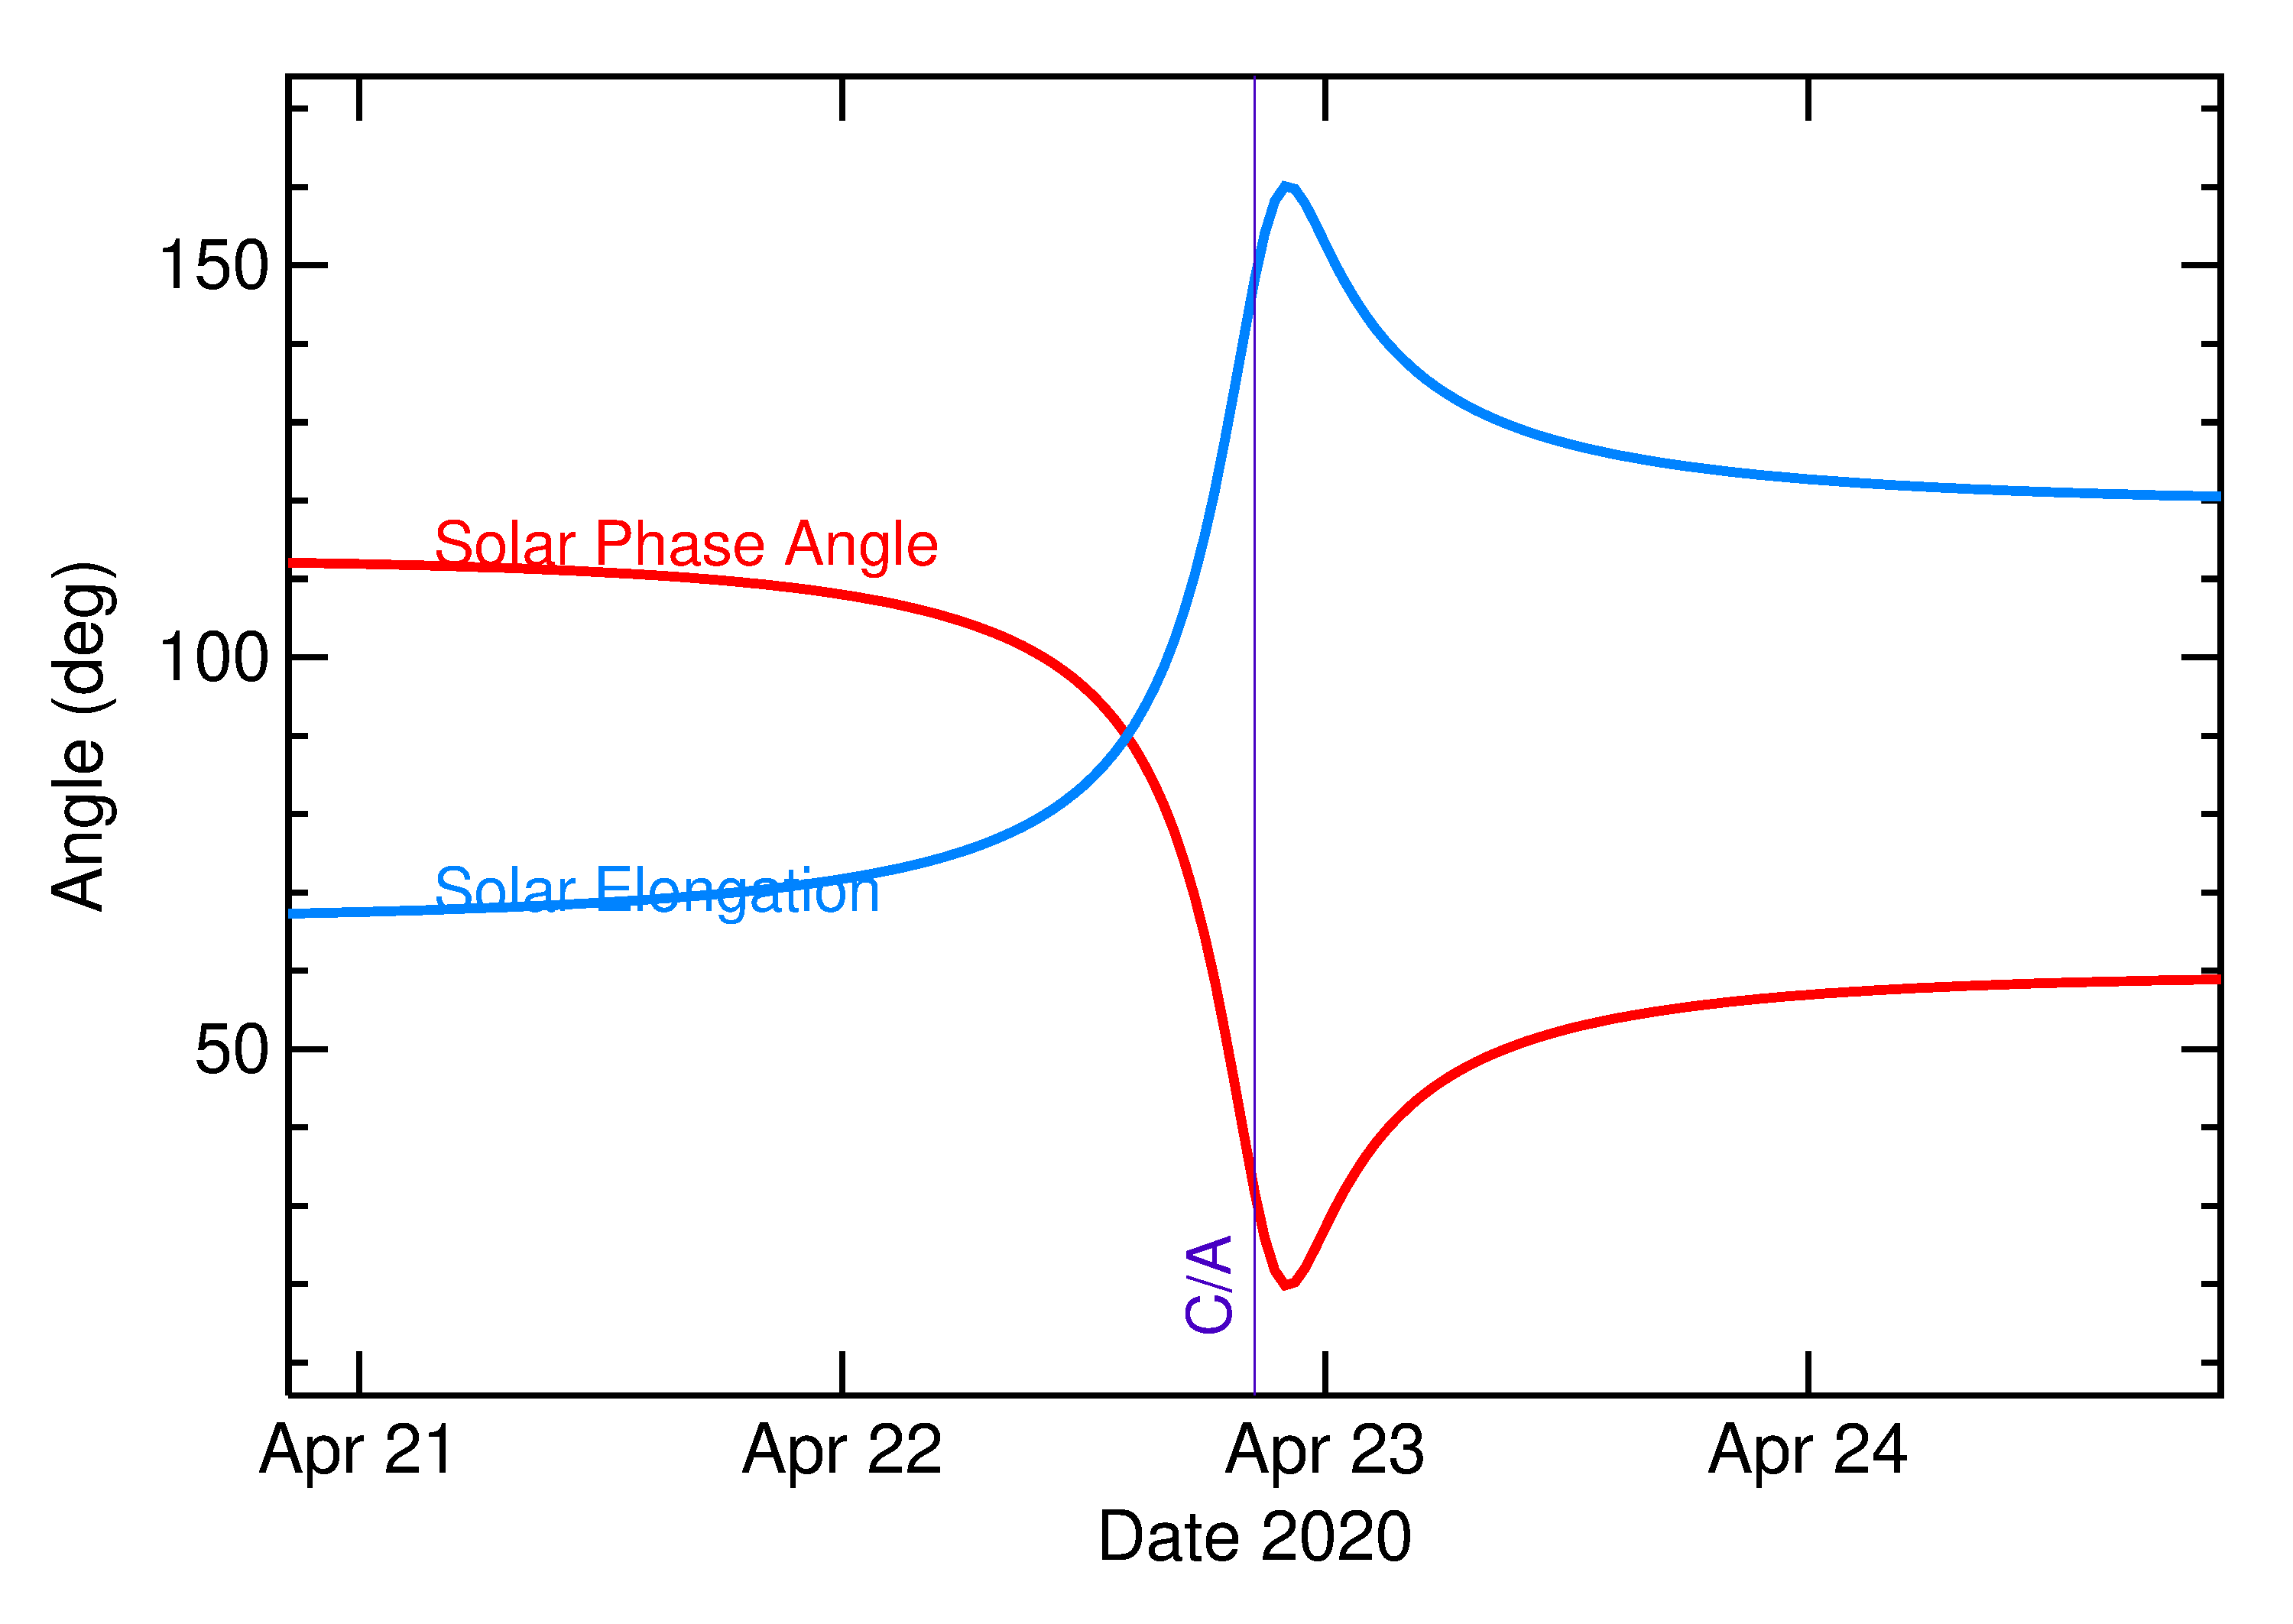 Solar Elongation and Solar Phase Angle of 2020 HU7 in the days around closest approach